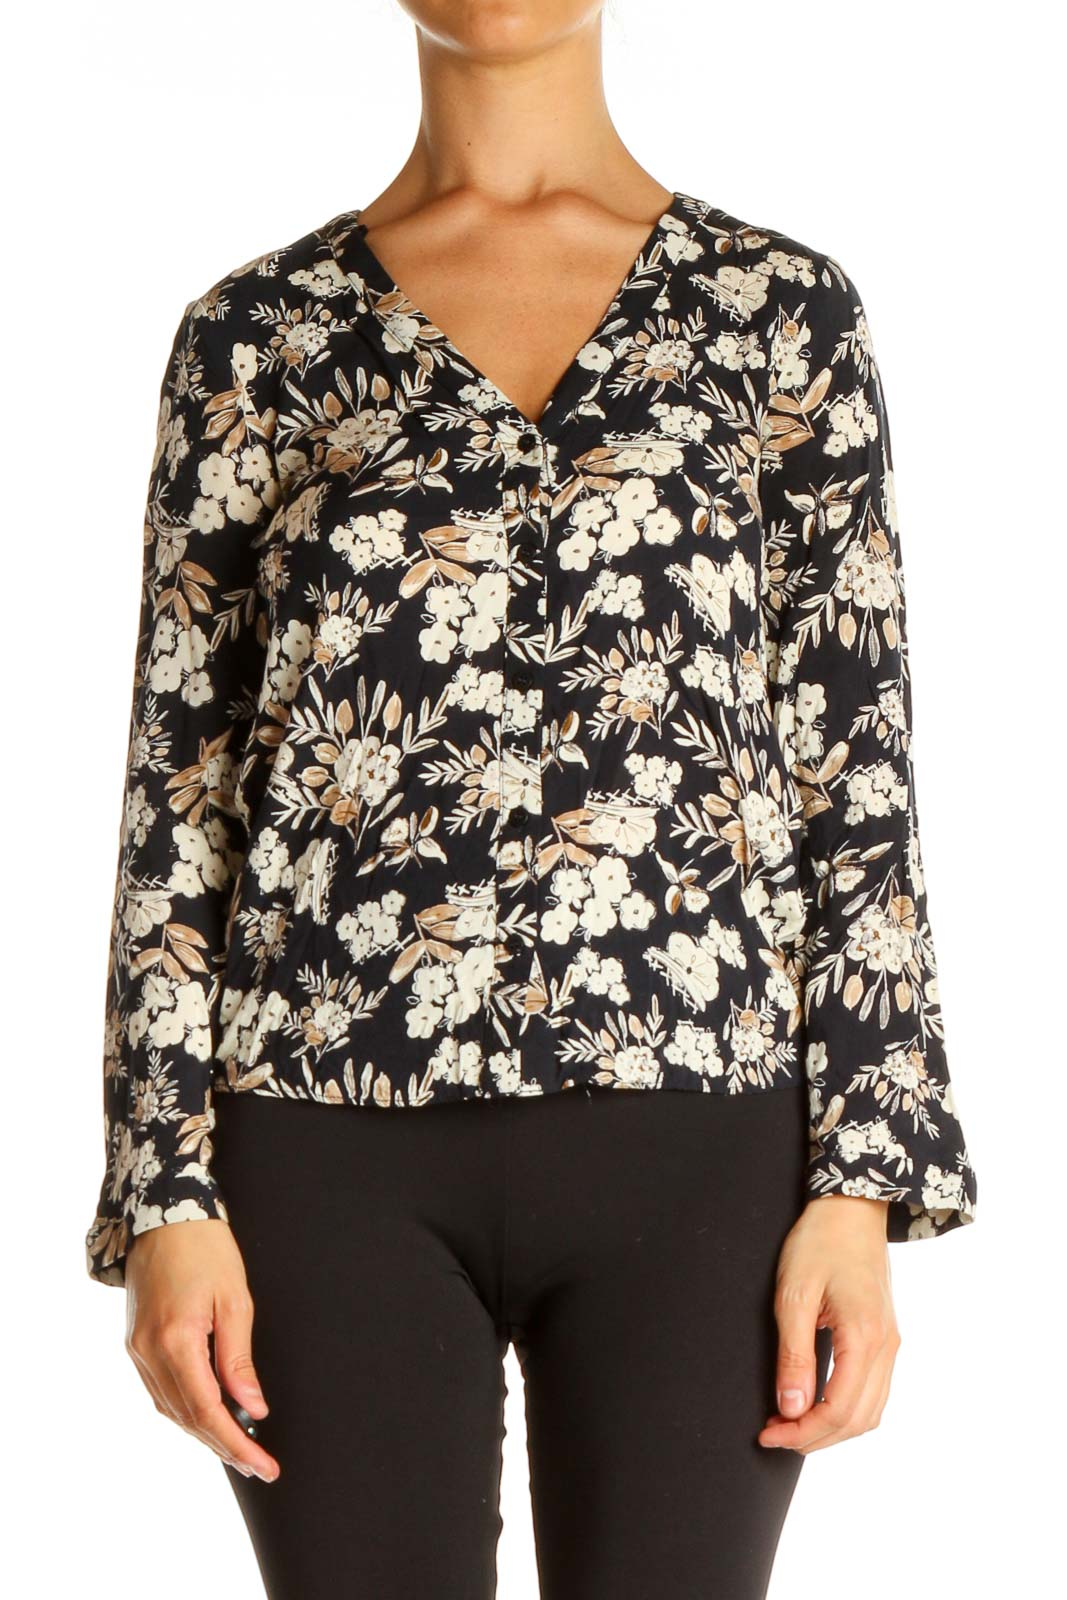 Beige Floral Print All Day Wear Blouse Front